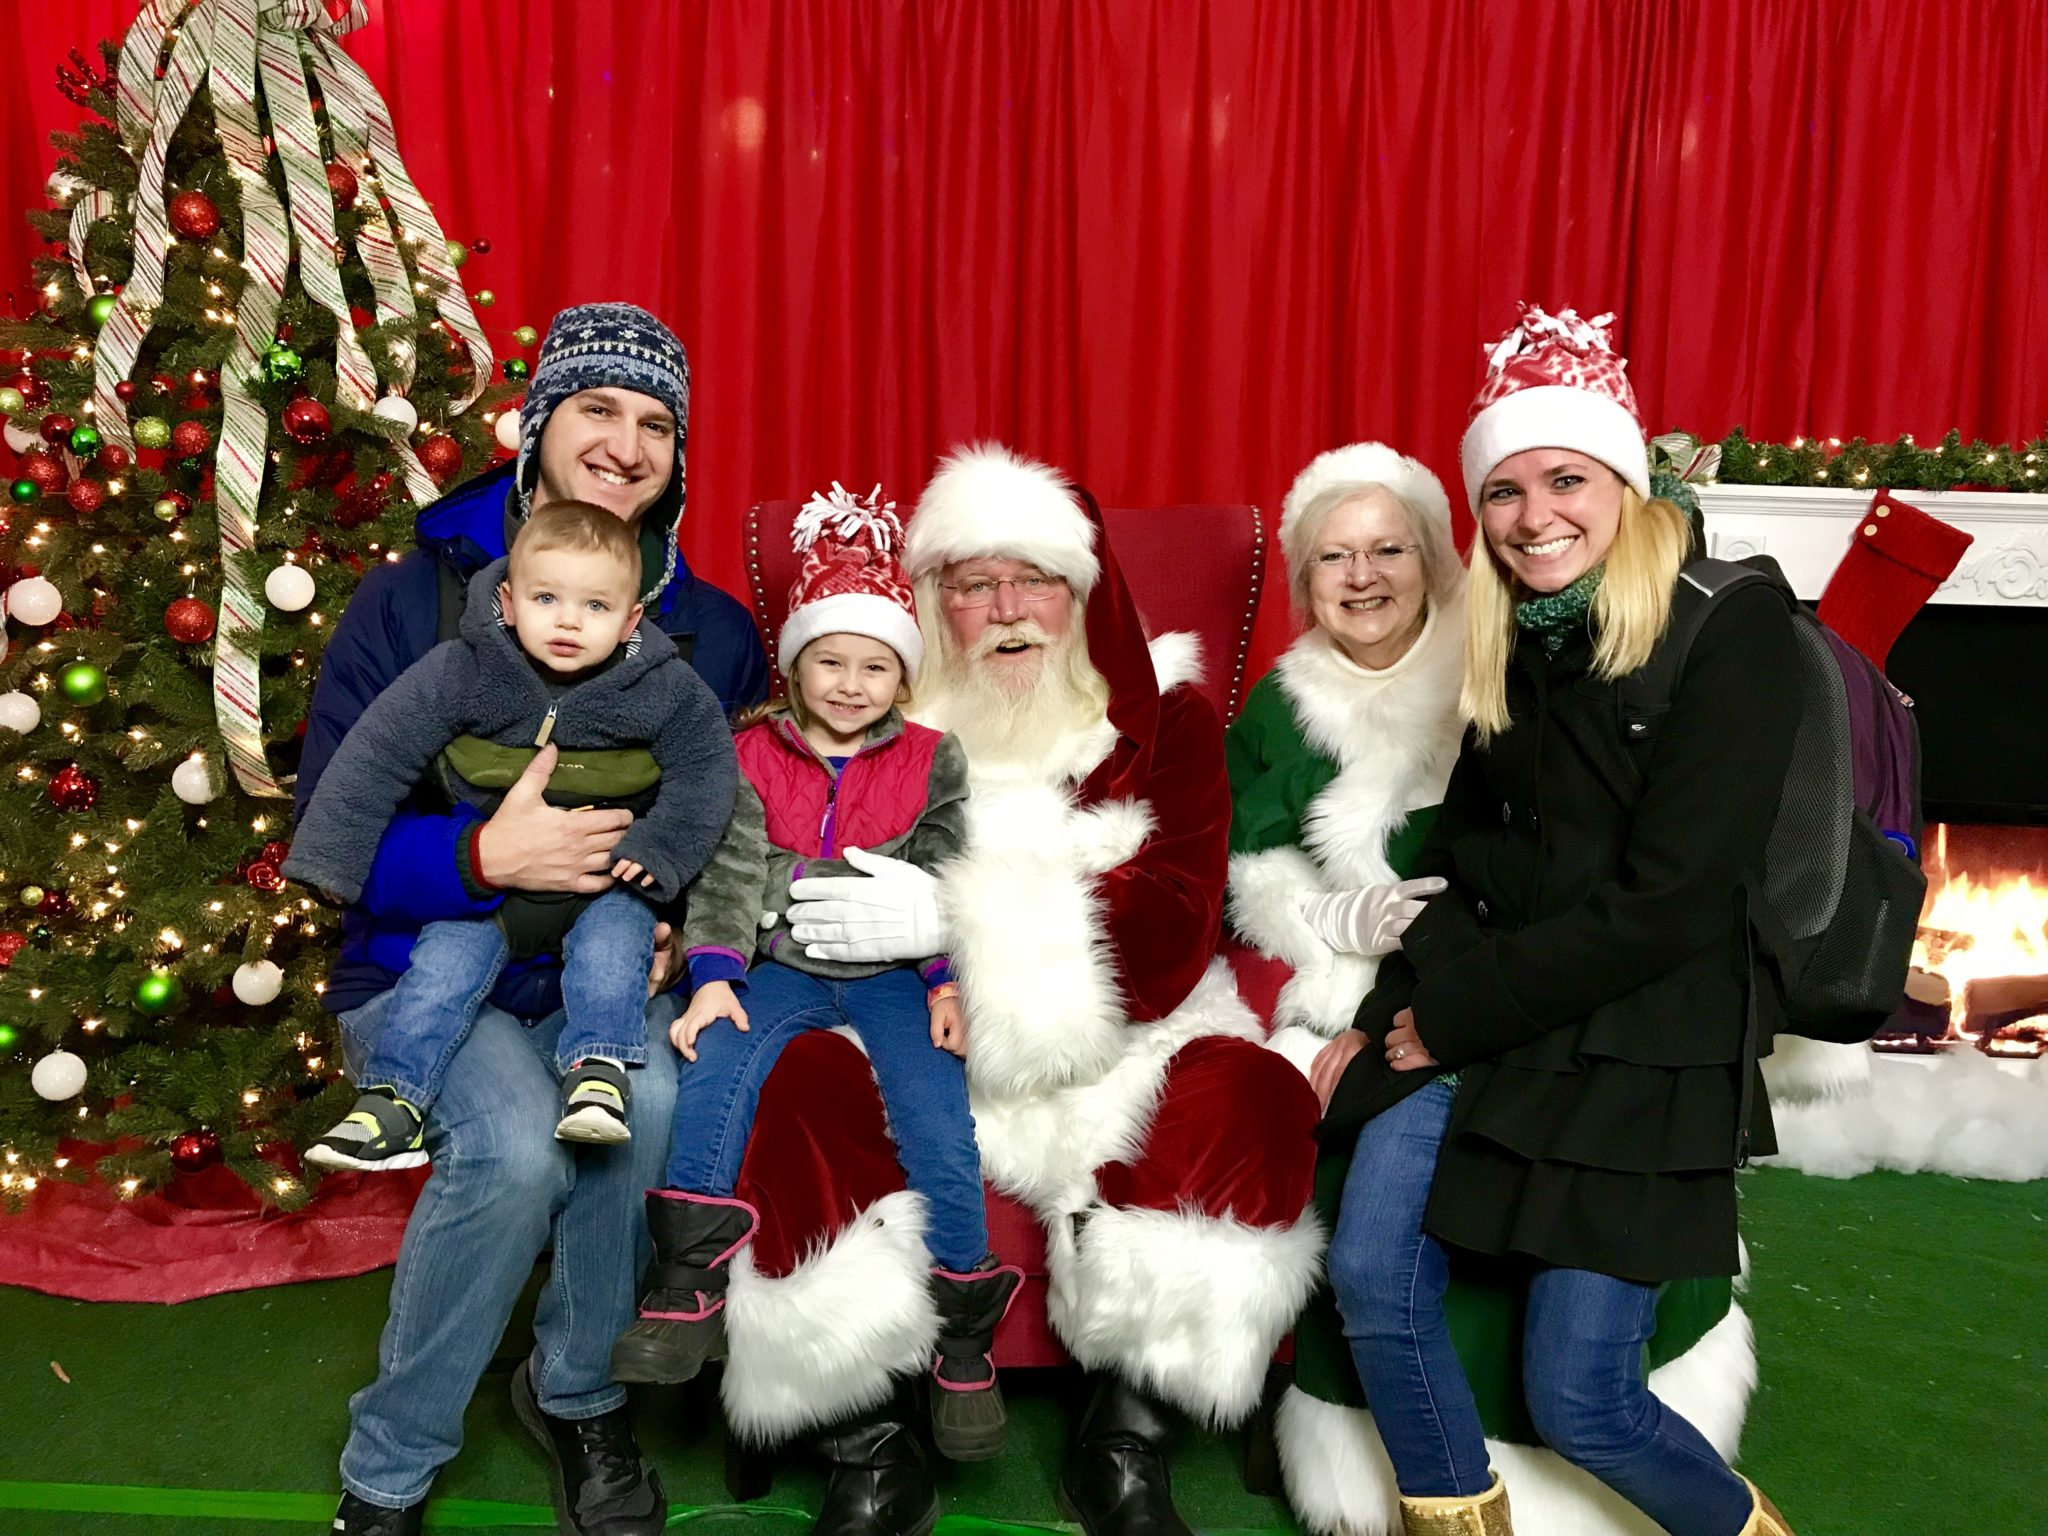 Pullen Park Christmas 2019.All Aboard The Holiday Express Thisaveragemom